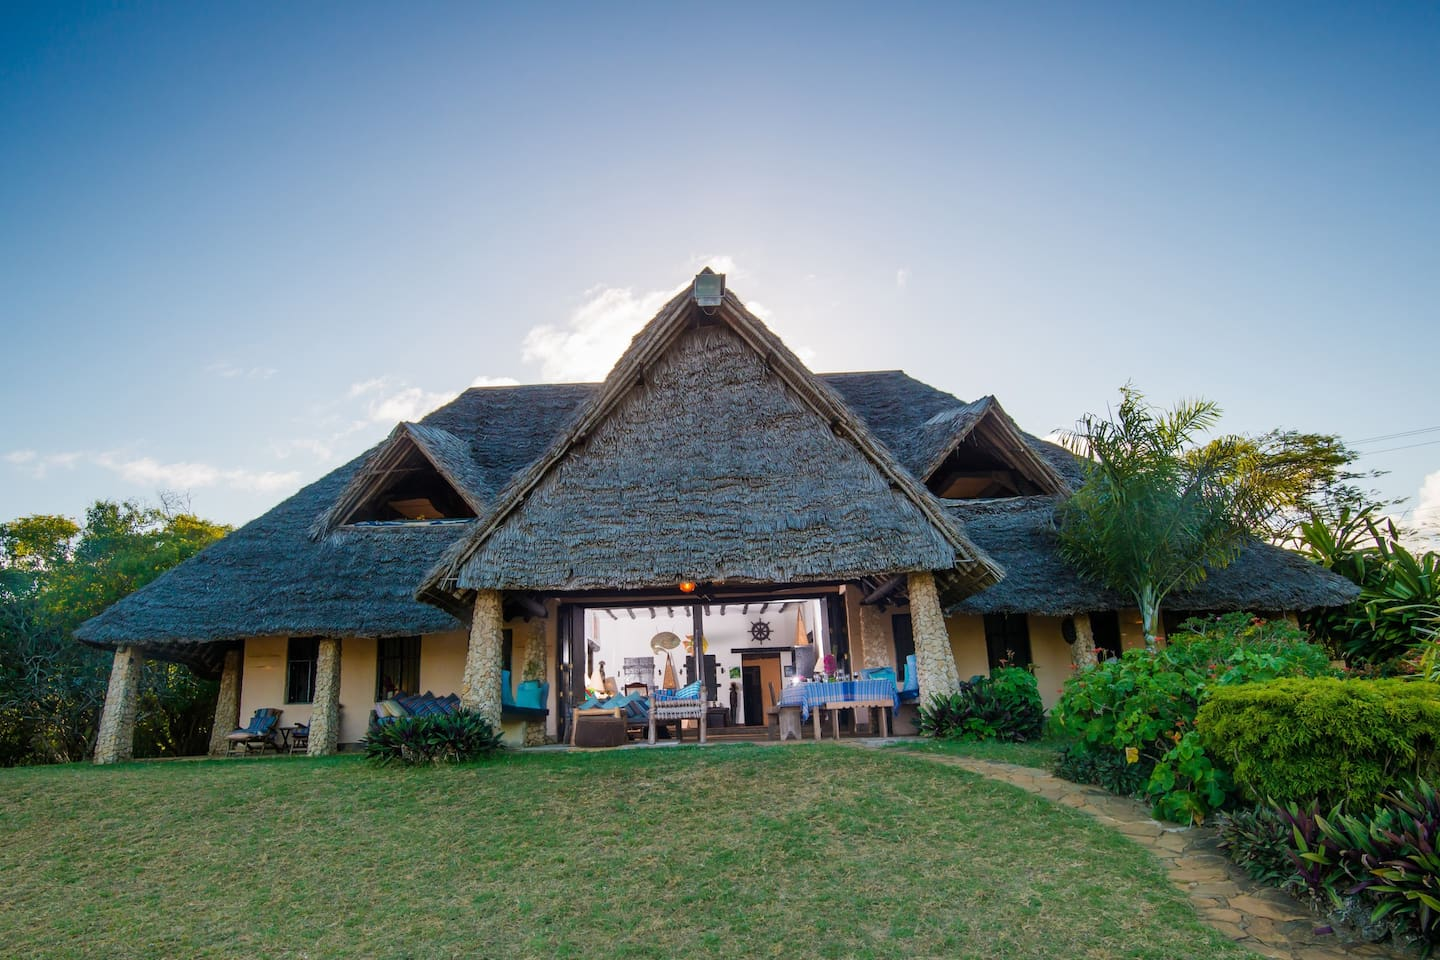 Our lovely Swahili-style home